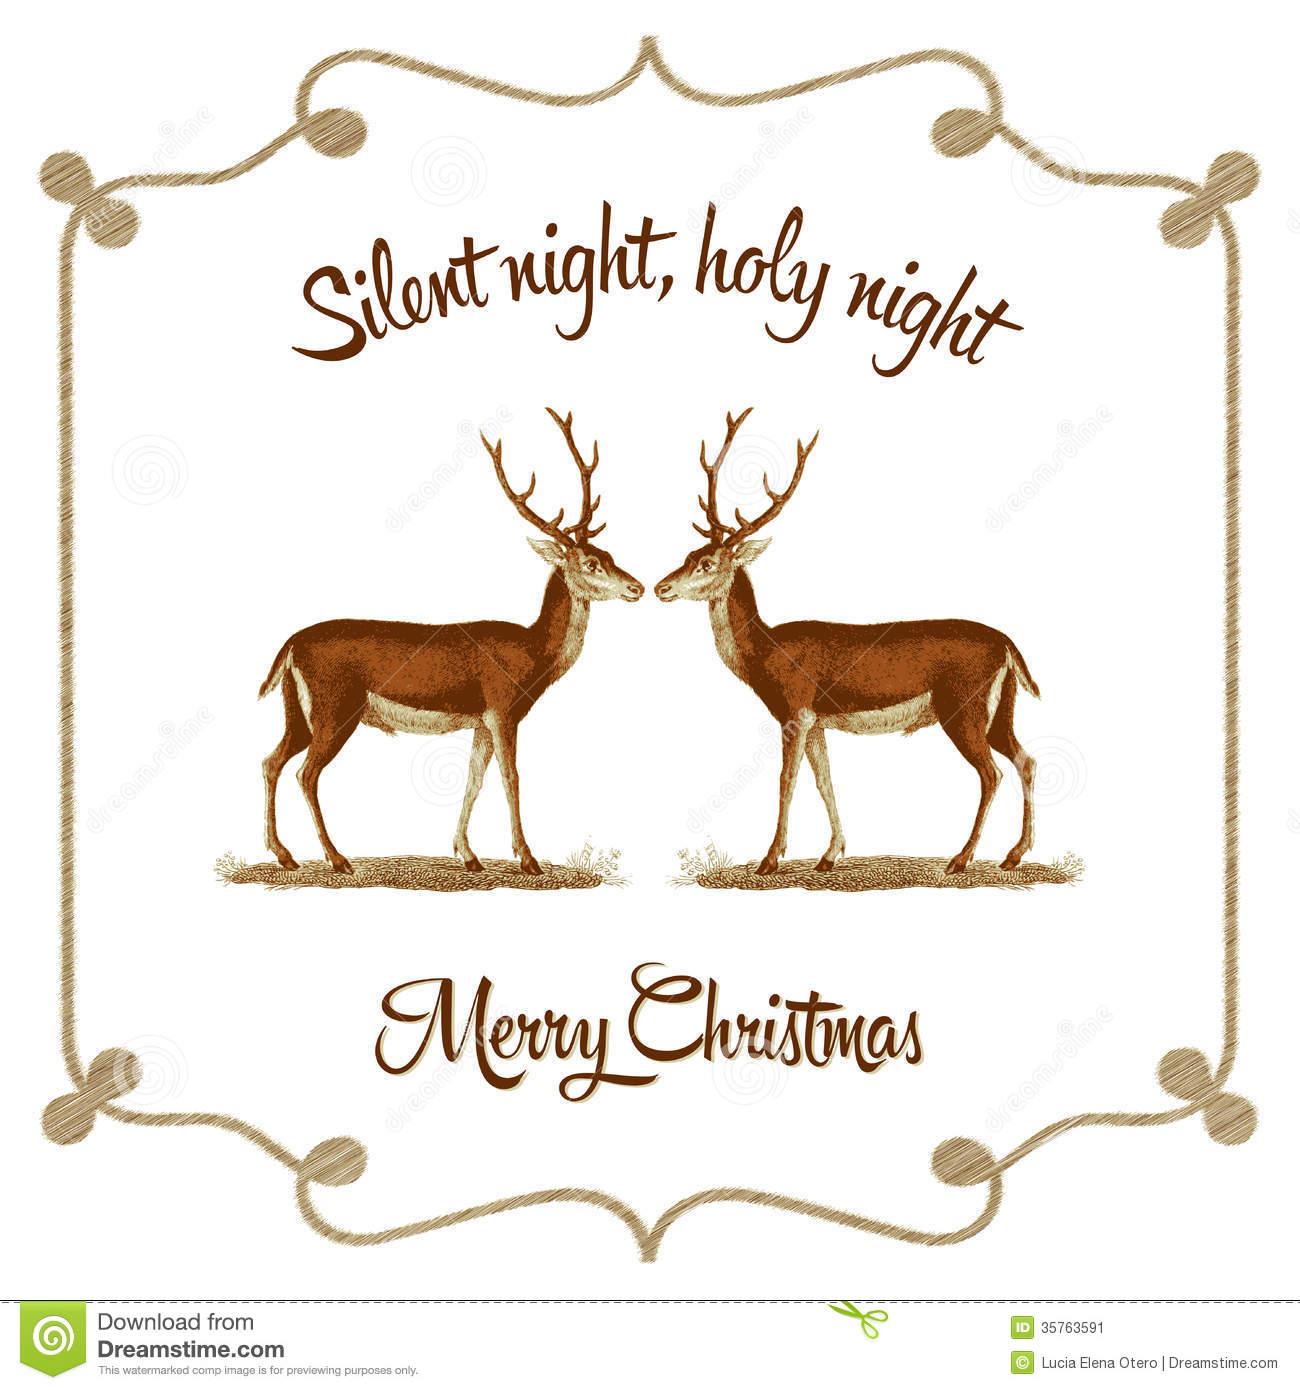 Silent Night, Holy Night - Christmas Card Stock Vector ...